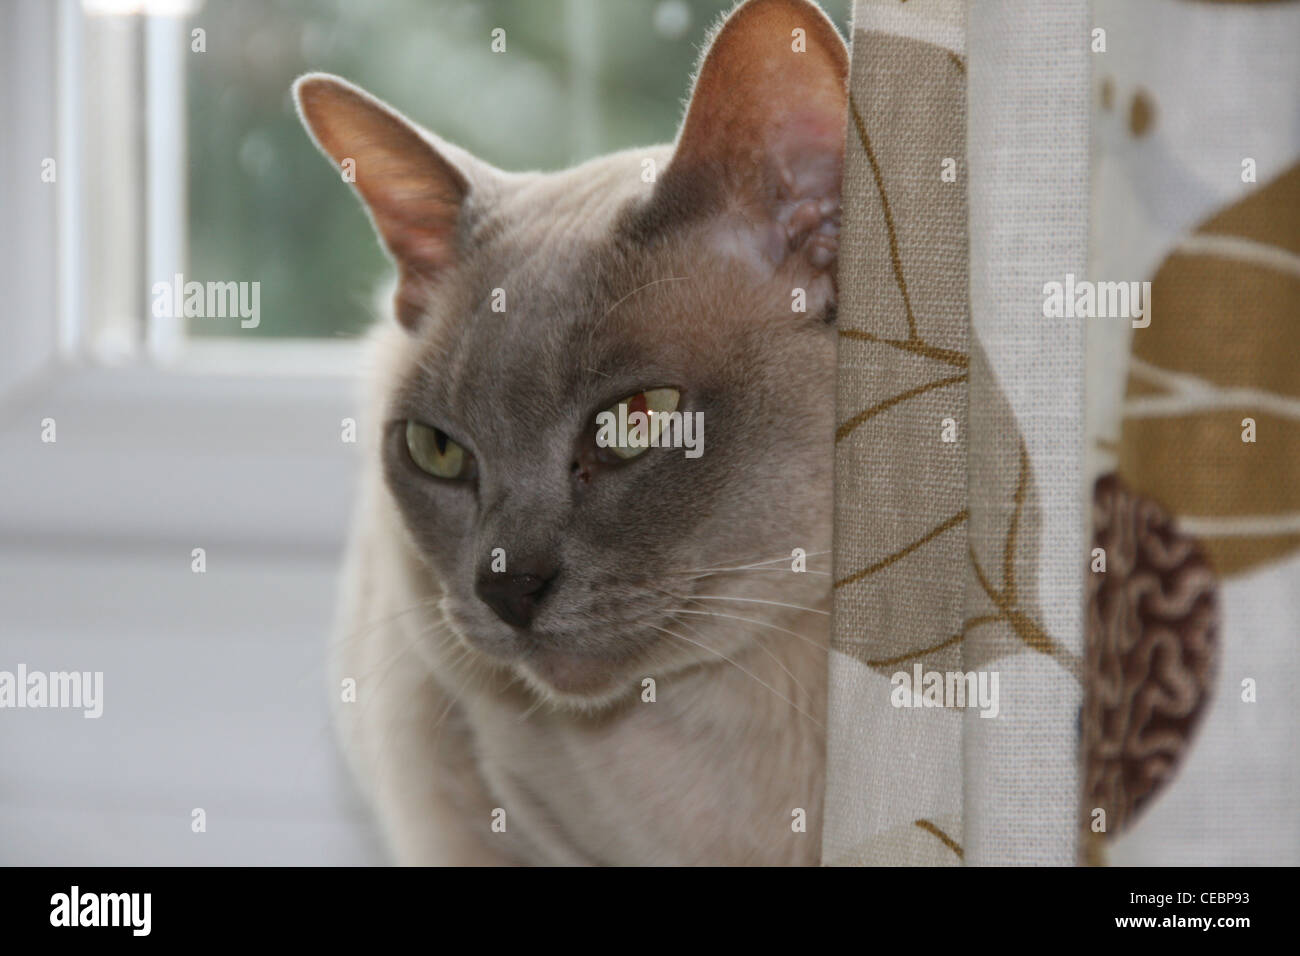 Lily a Lilac Burmese cat sitting behind the curtain on the windowsill. - Stock Image